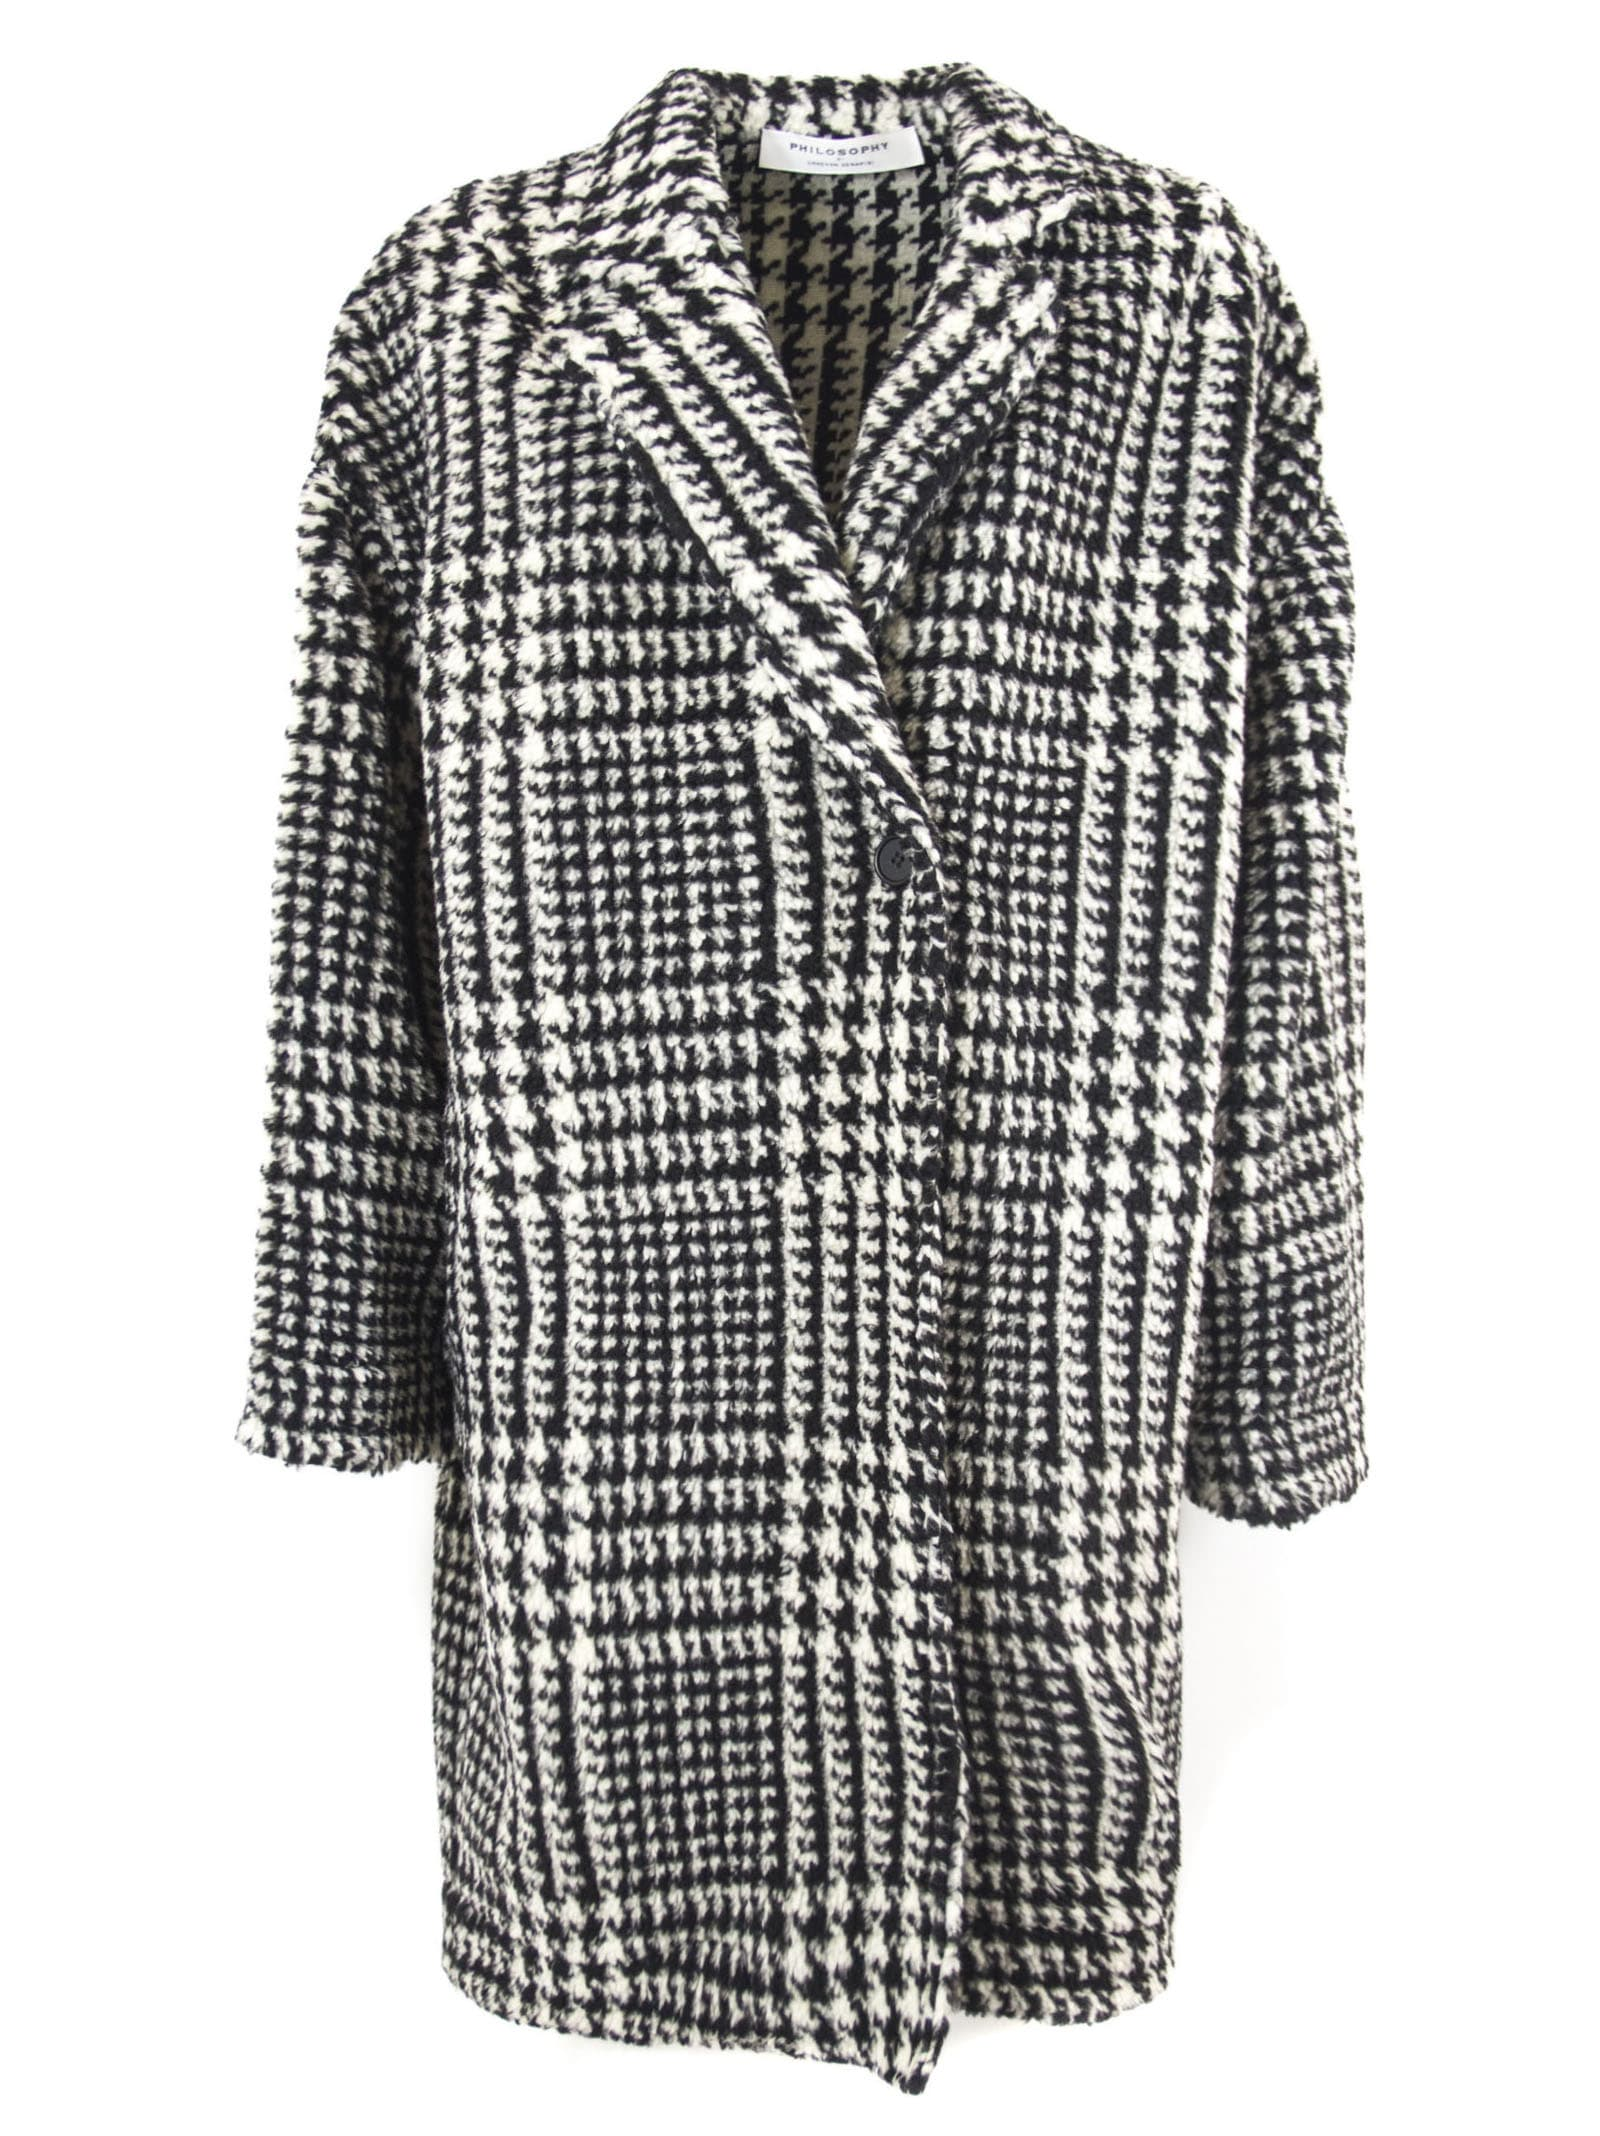 Philosophy di Lorenzo Serafini Coat With Check Motif